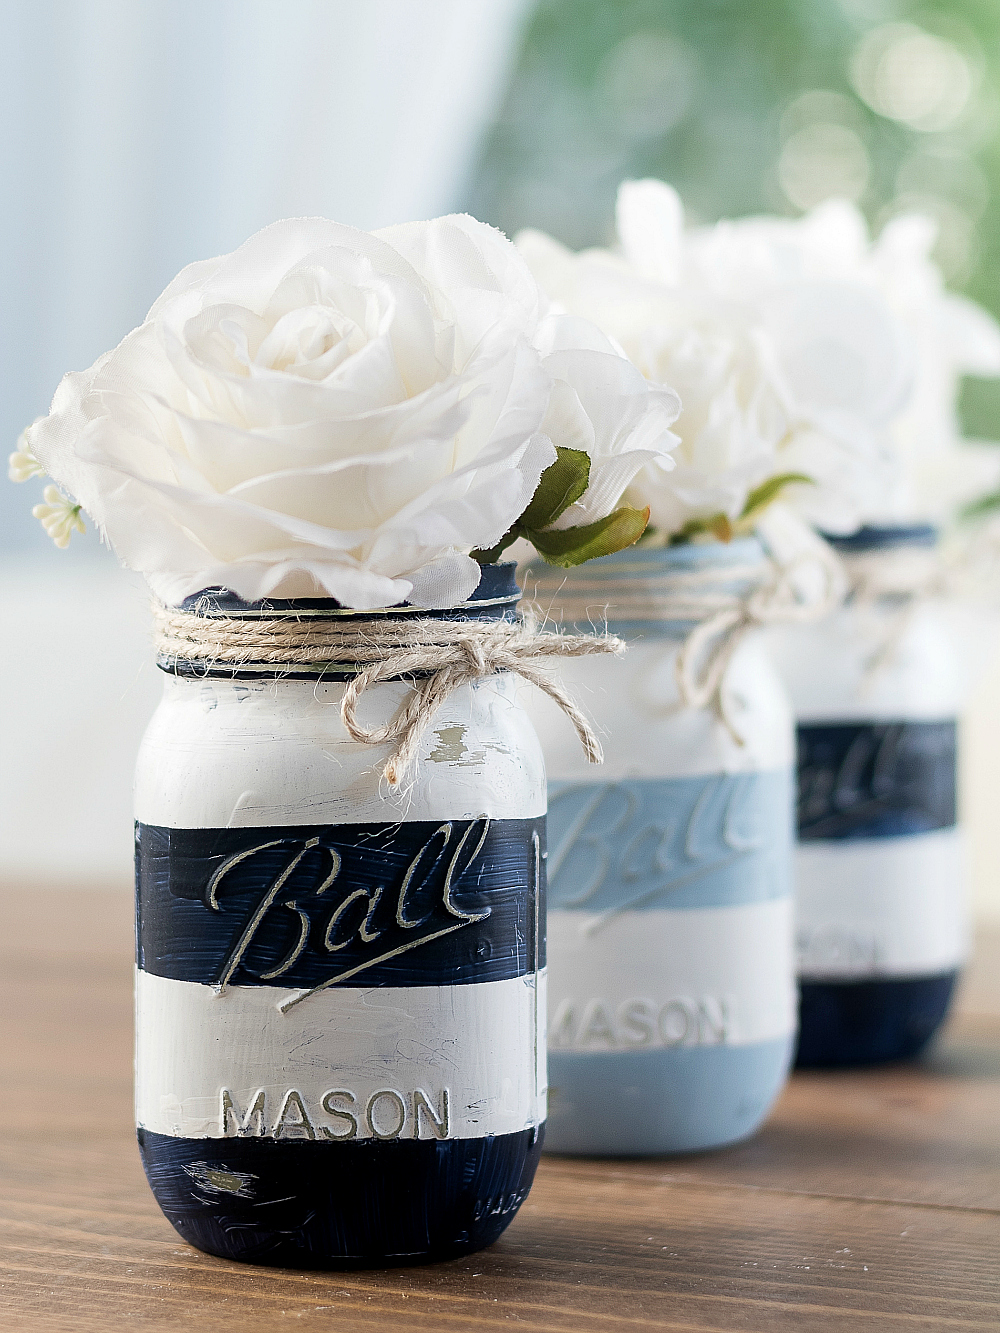 Nautical Striped Mason Jar Craft - Coastal Mason Jar - Beachy Mason Jar - Painted Distressed Mason Jar @itallstartedwithpaint.com